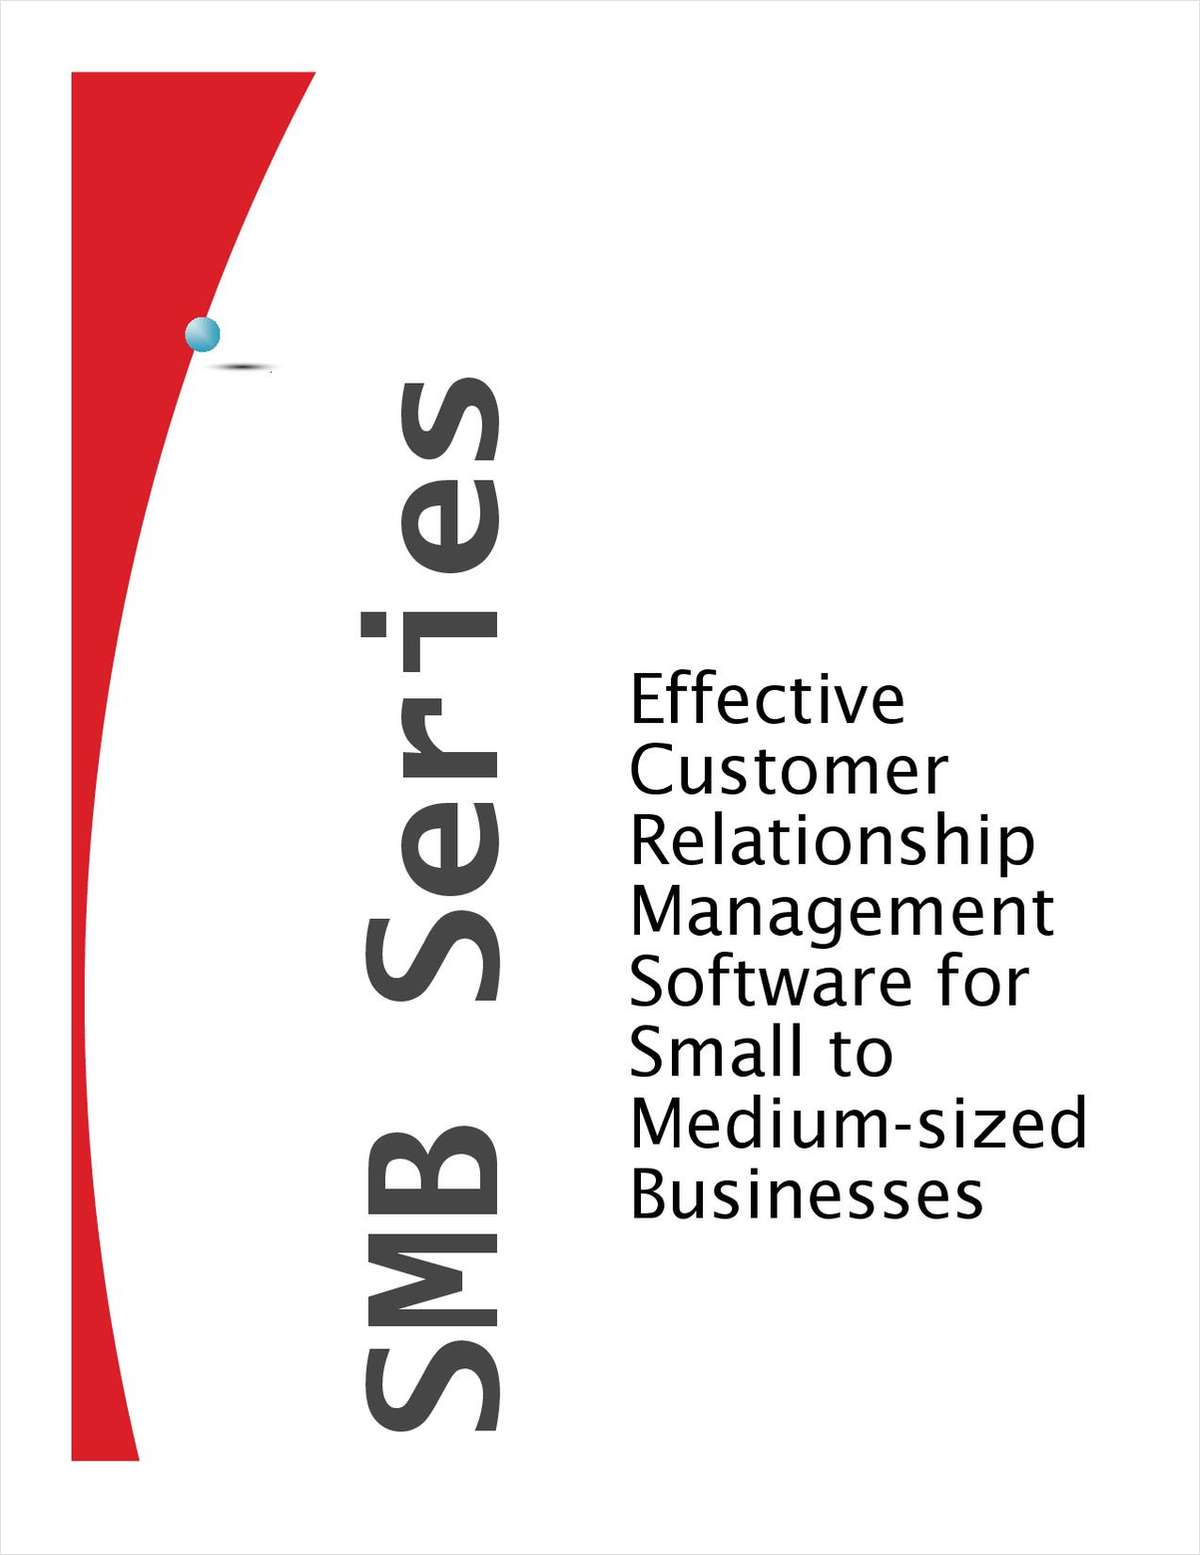 Effective Customer Relationship Management Software for Small to Medium-sized Businesses